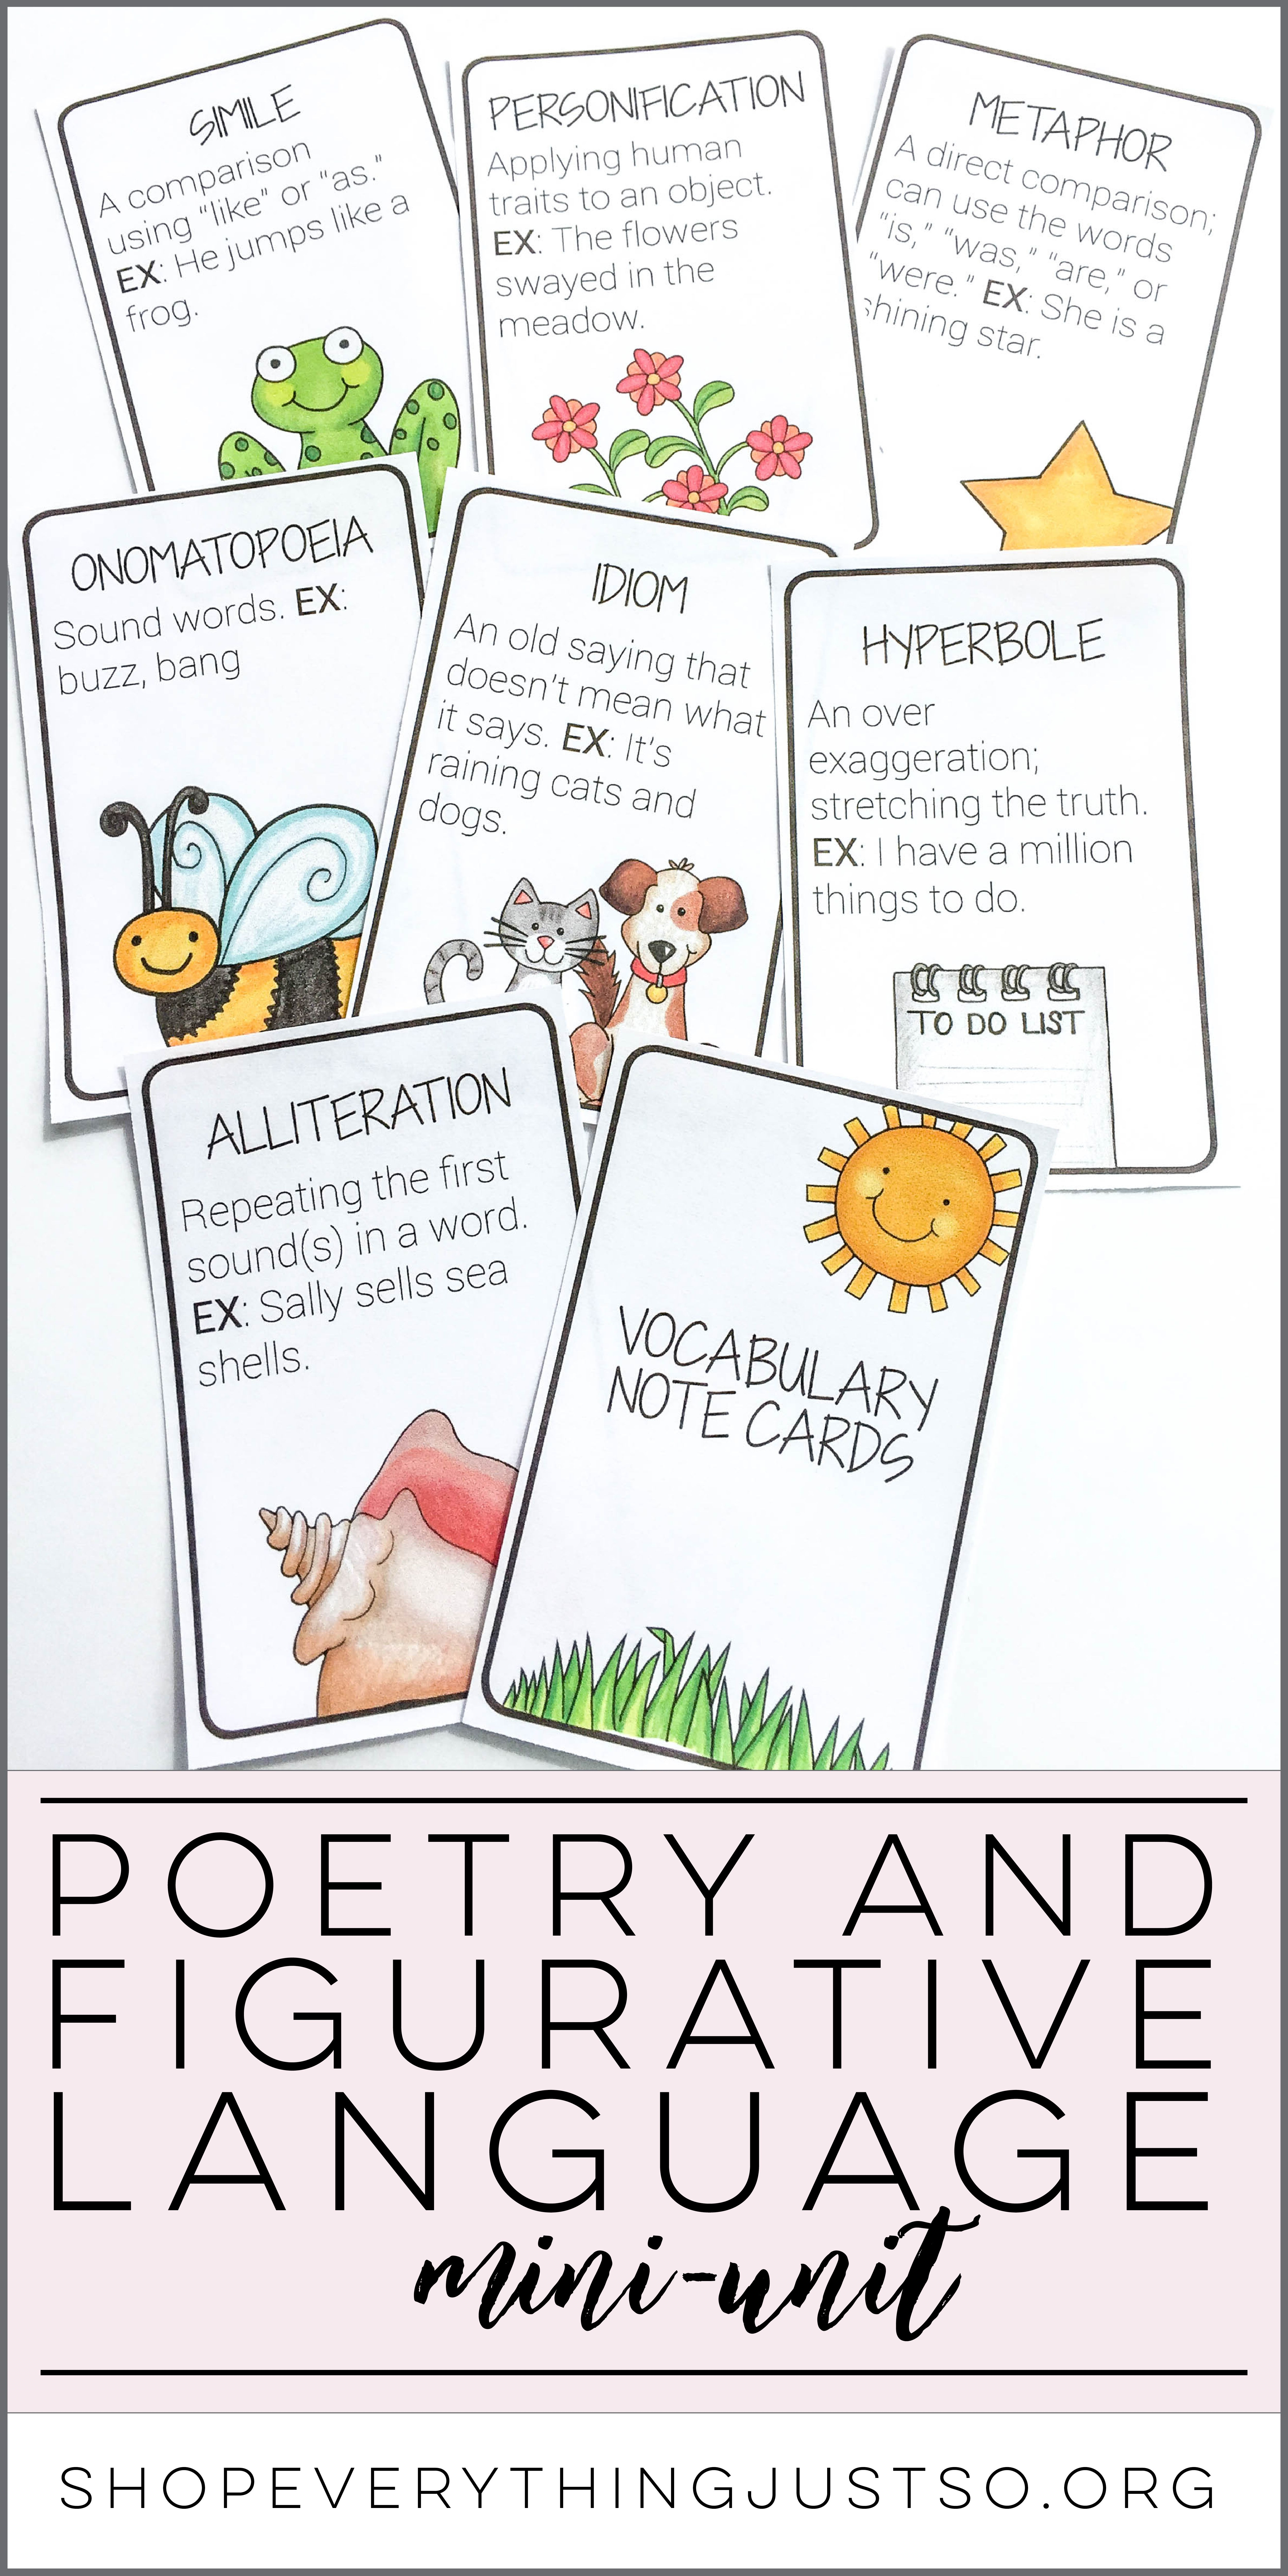 Poetry And Figurative Language Mini Unit